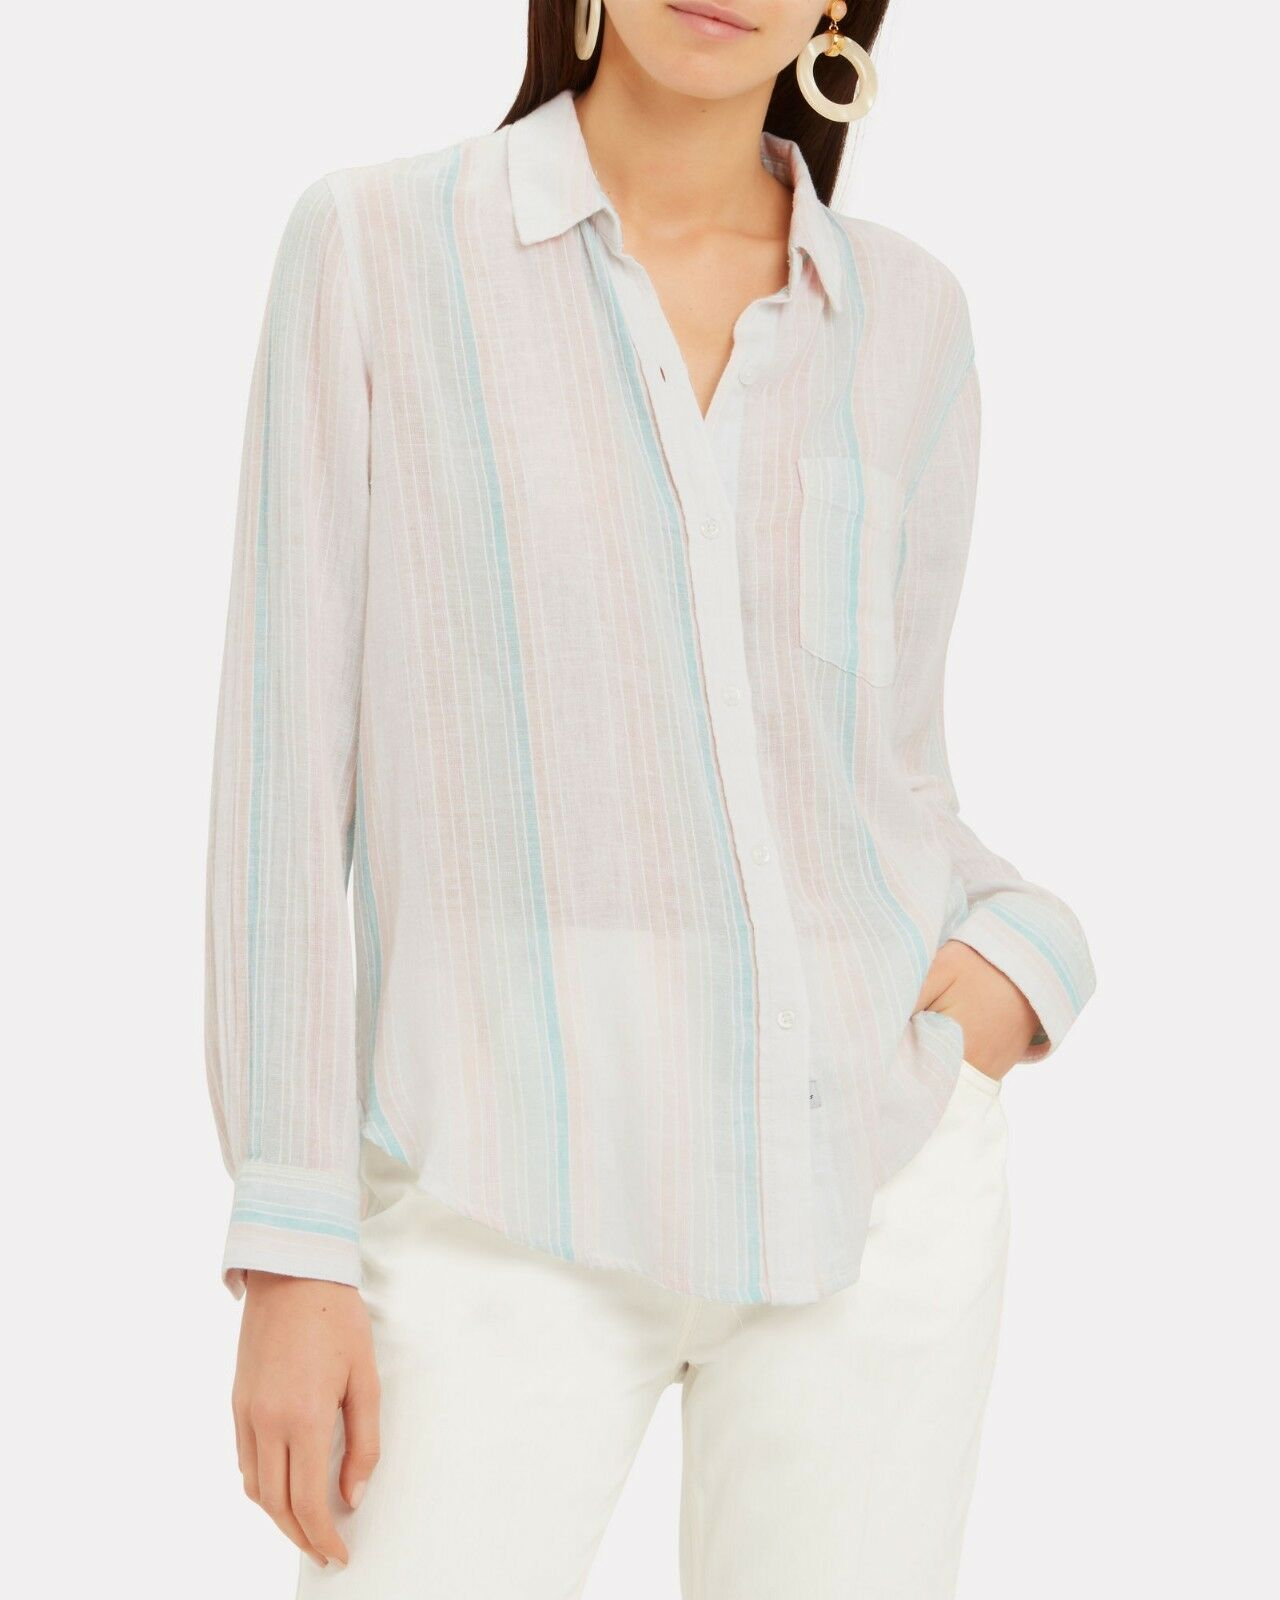 NWT Authentic Rails Marbella Long Sleeve Stripe Button Down Shirt Small